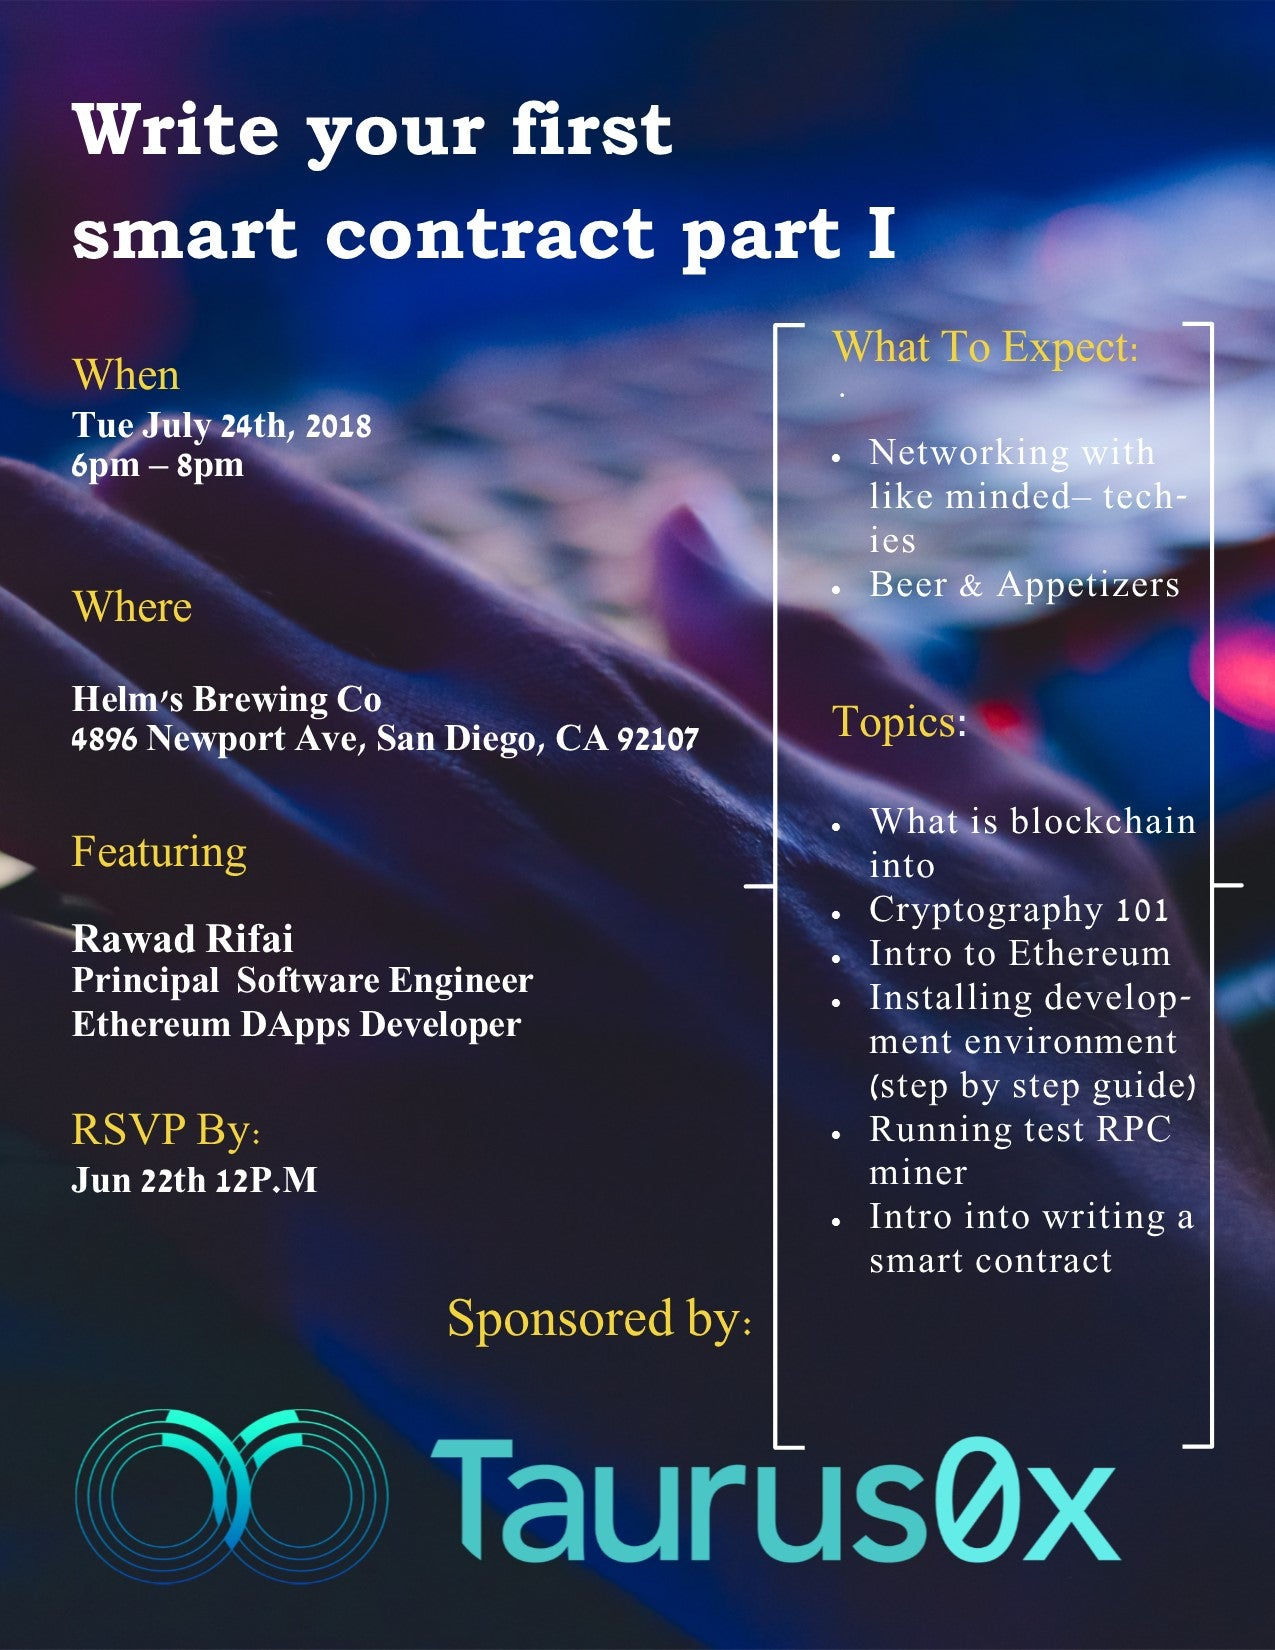 Write Your First Smart Contract By Rawad Rifai - Taurus0x Co-Founder. Blockchain basics